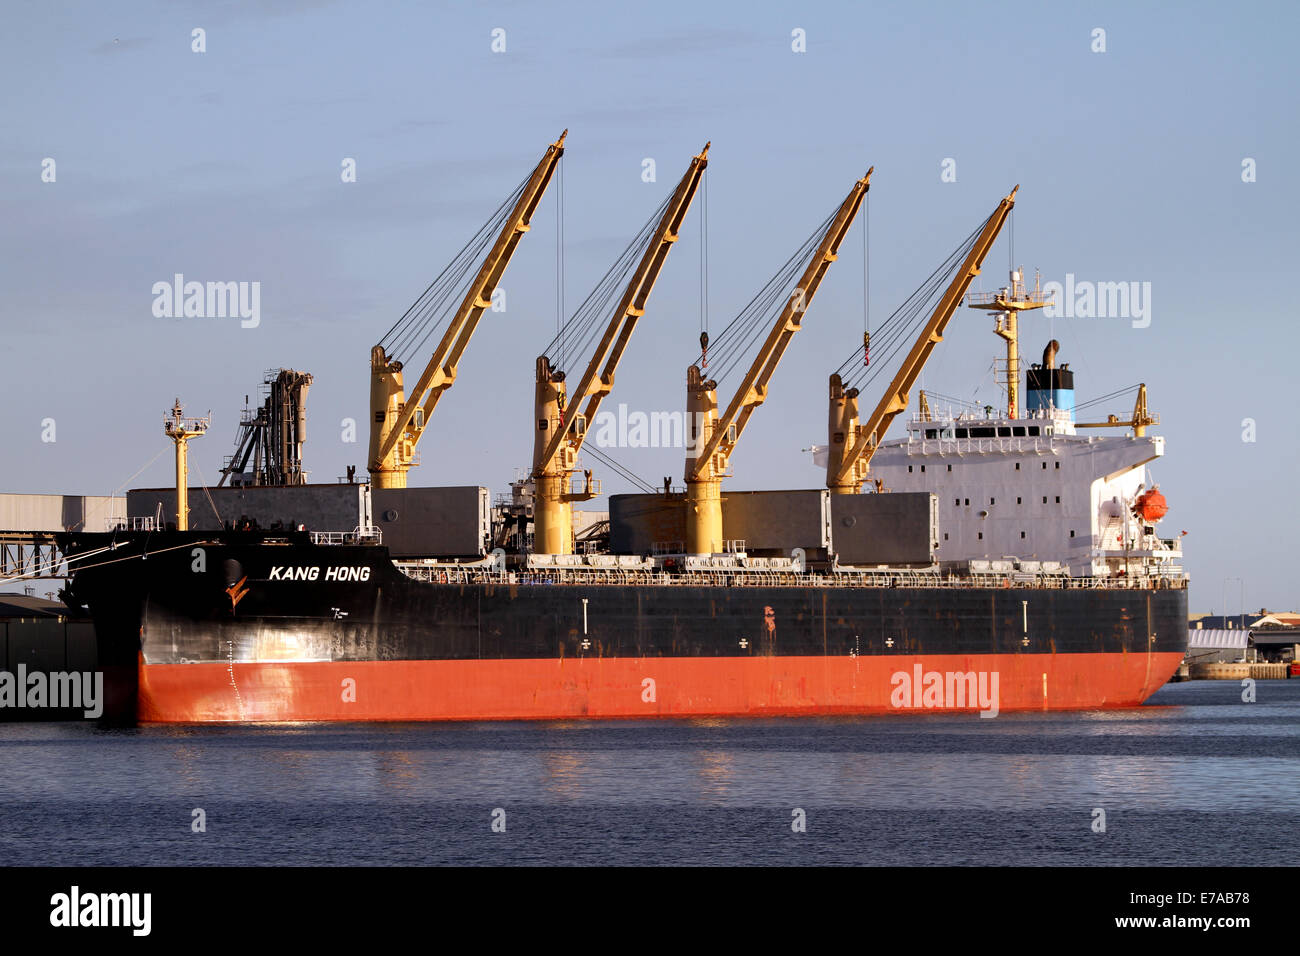 The bulk carrier Kang Hong moored in Adelaide Australia - Stock Image